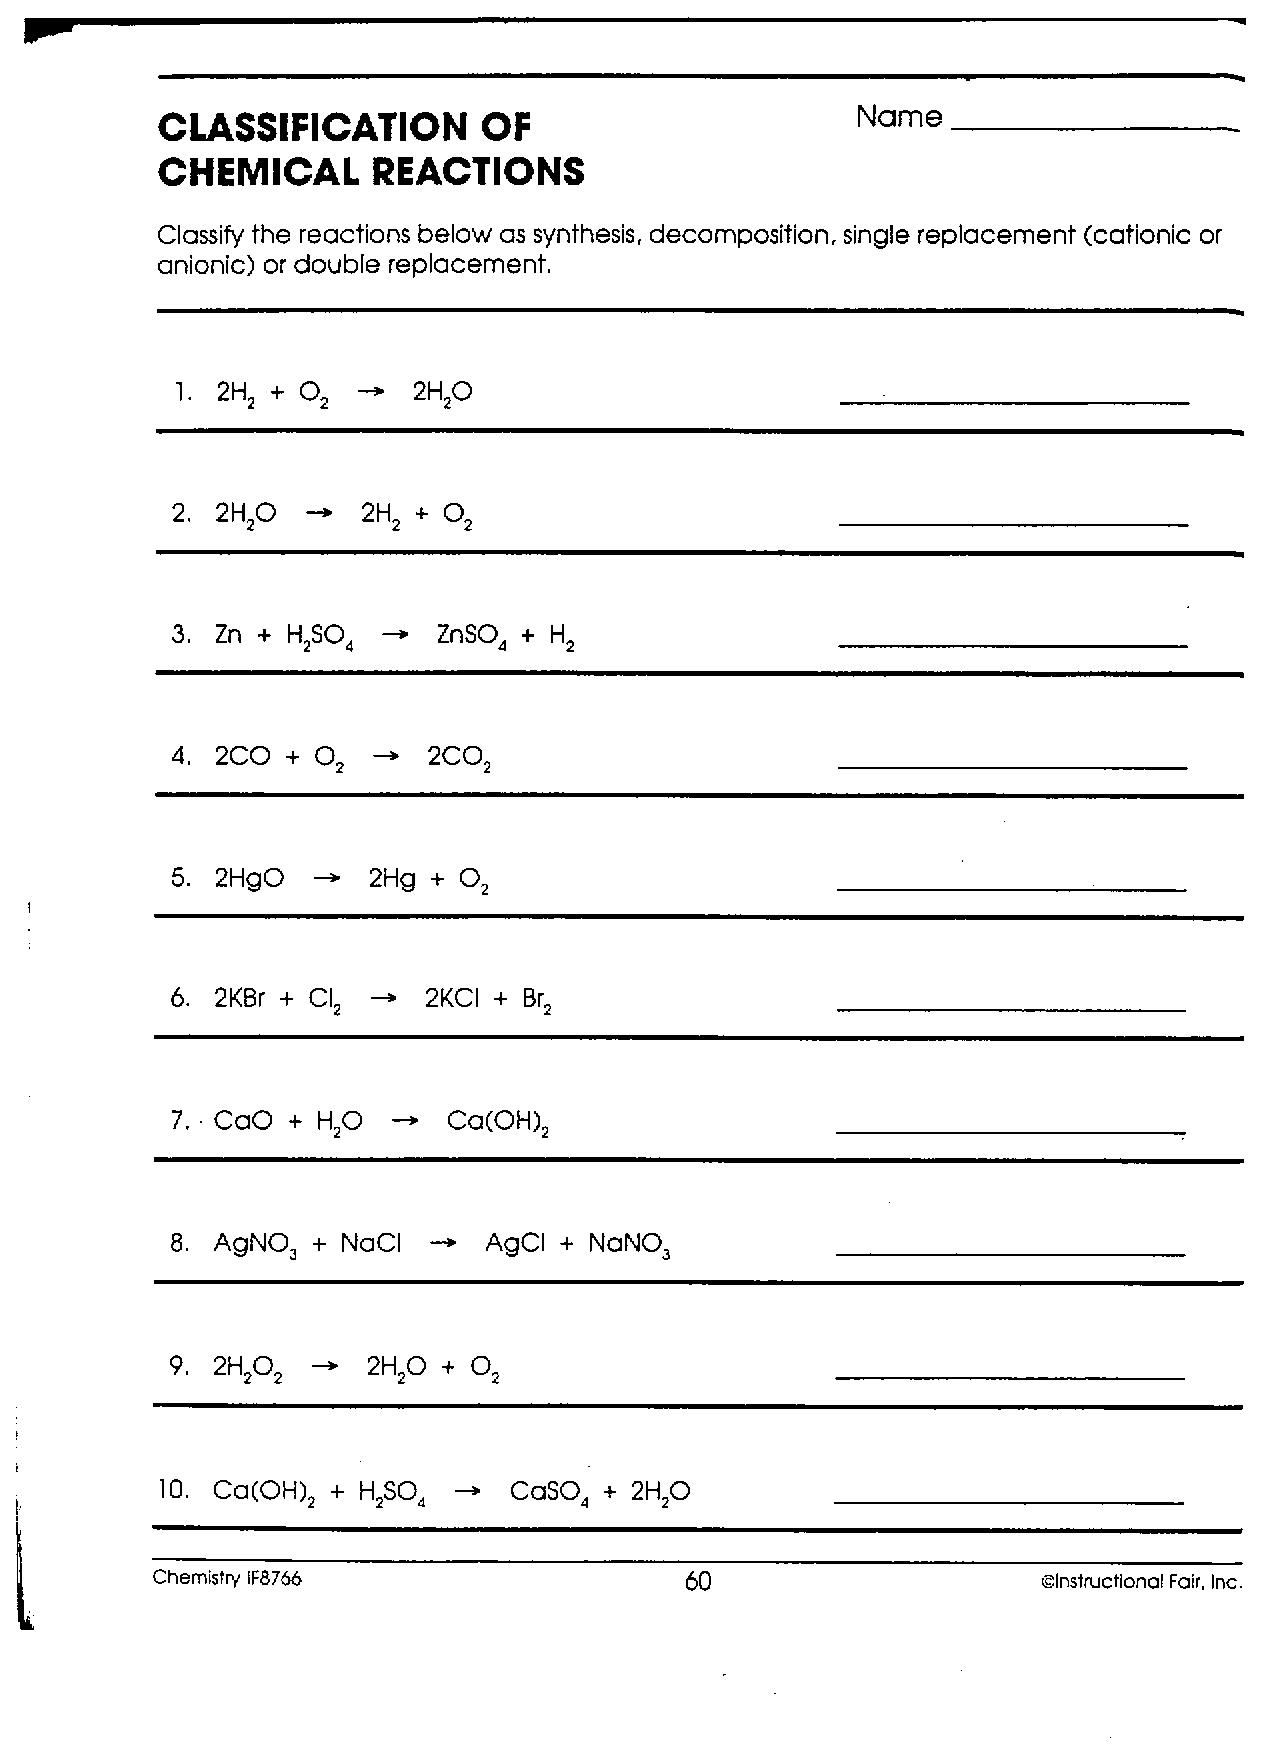 Printables Classification Of Chemical Reactions Worksheet chemical reaction worksheets with answers davezan reactions davezan